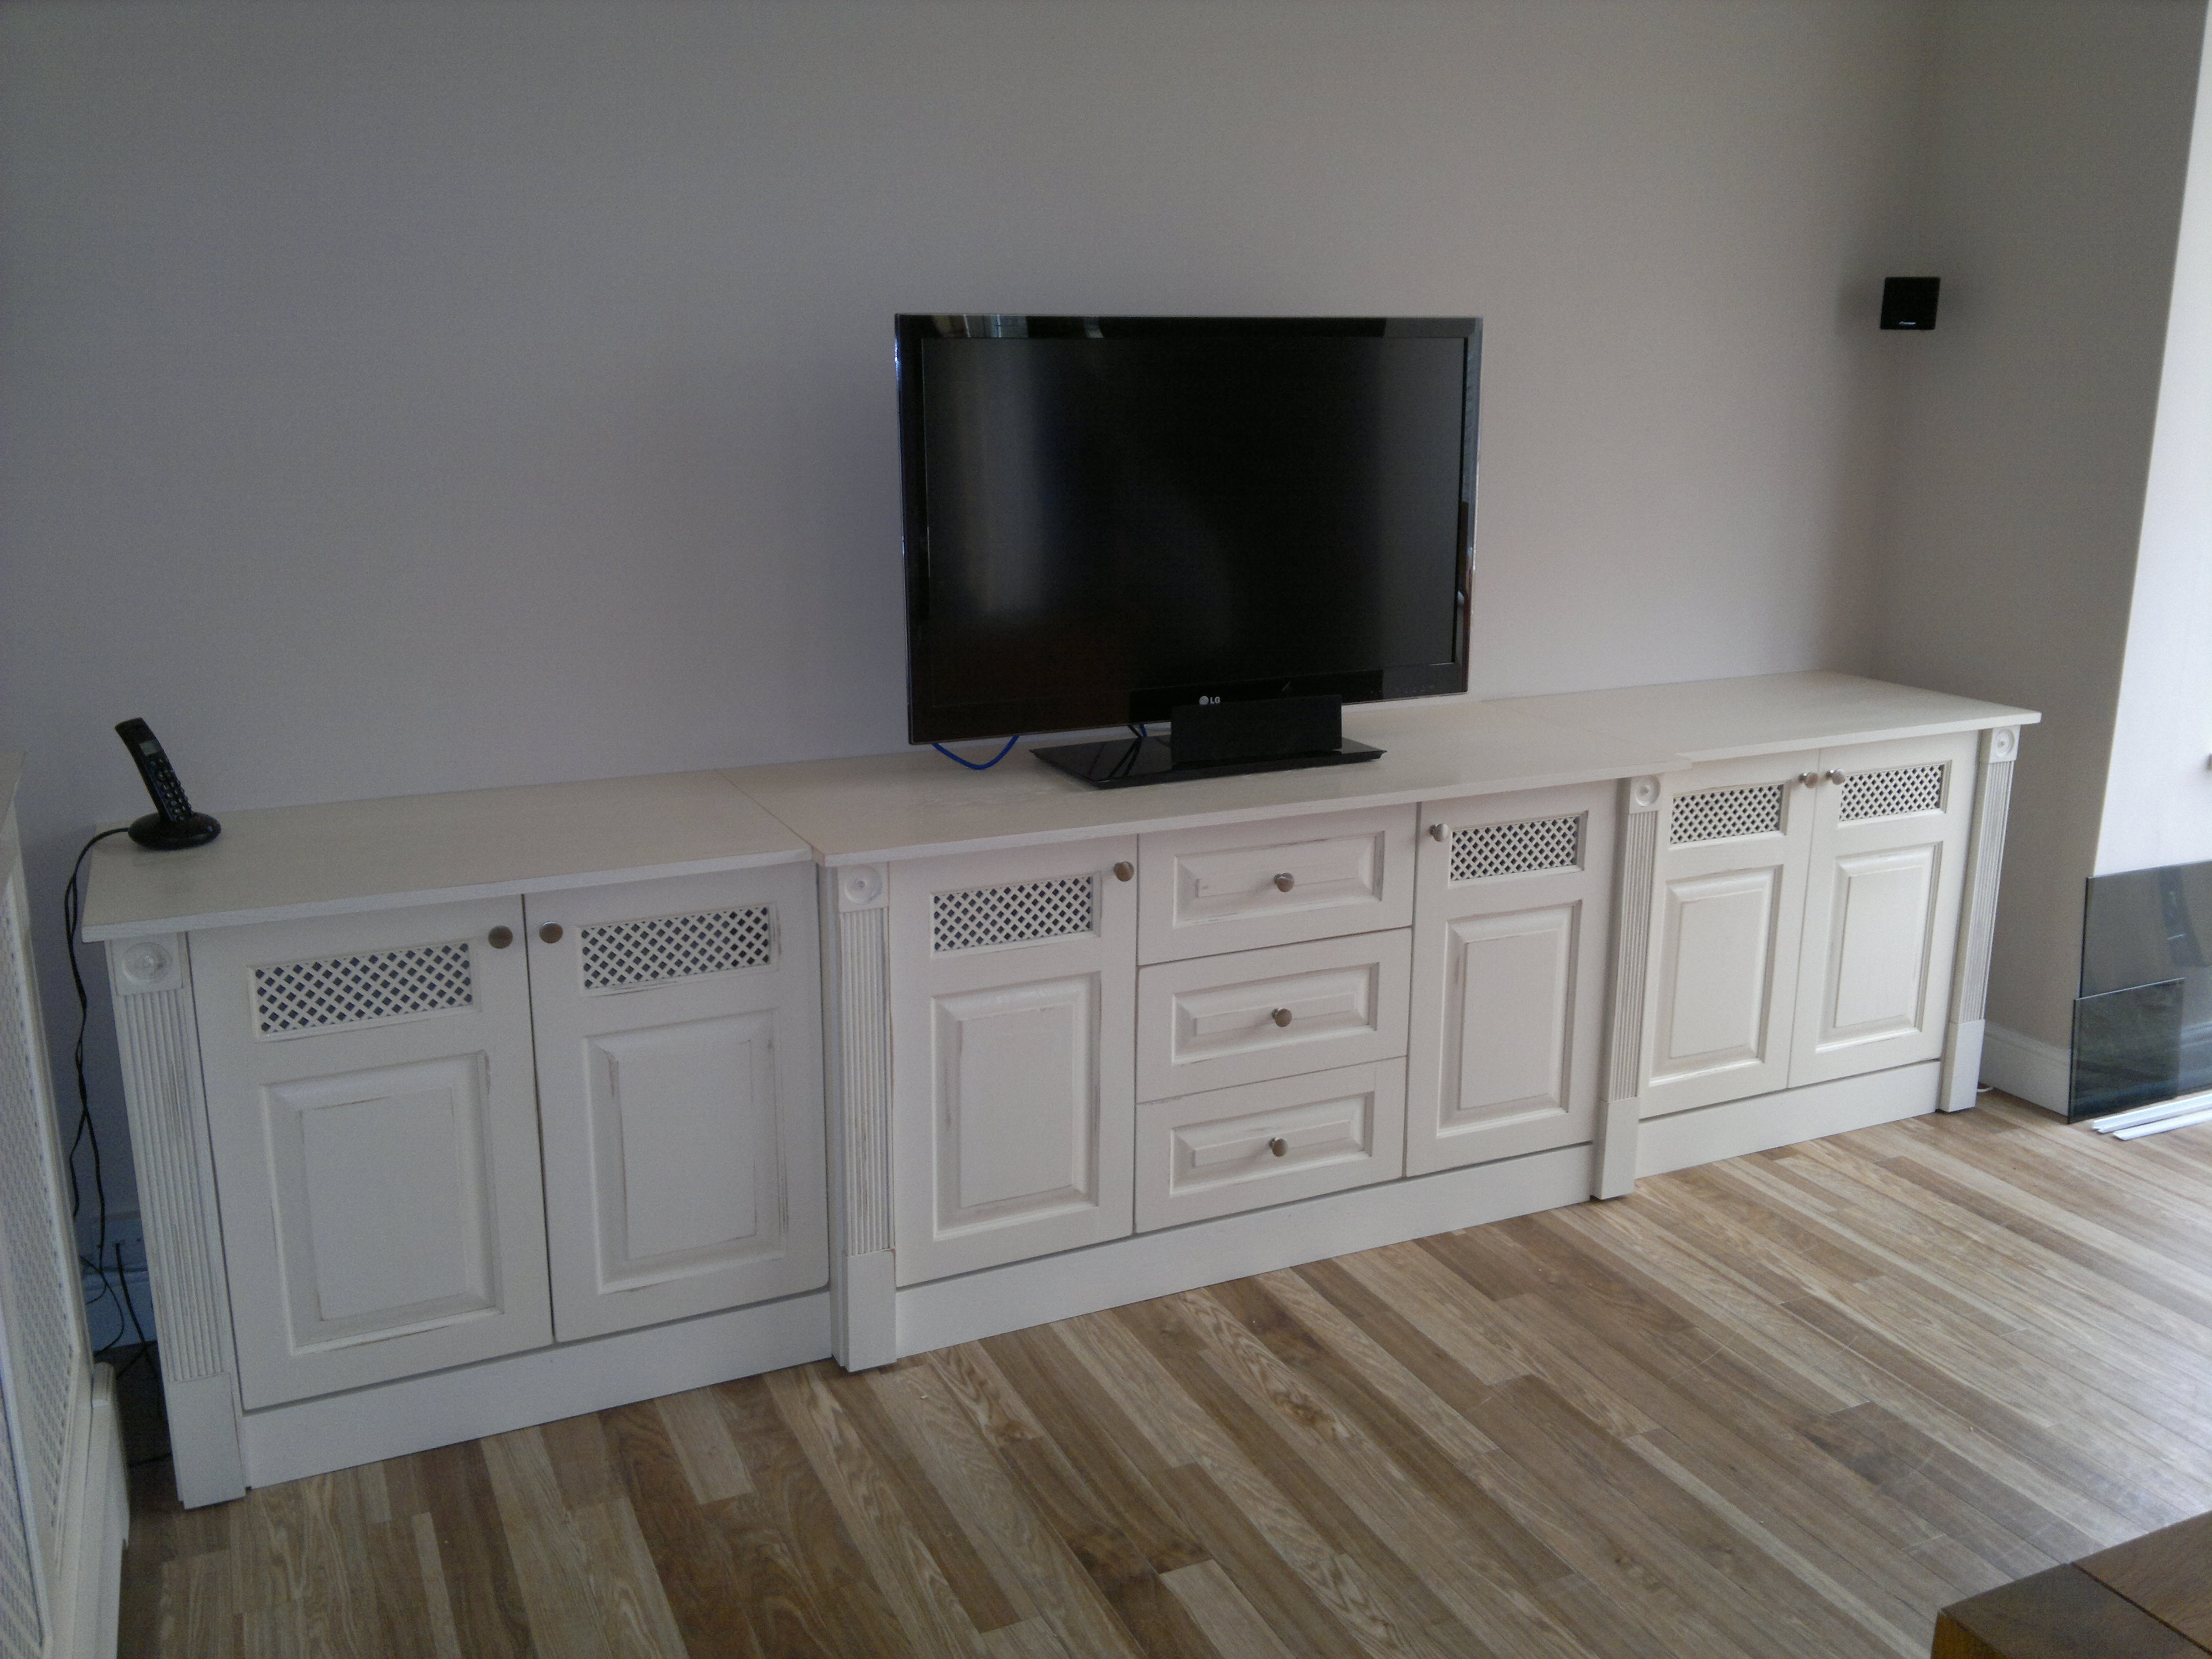 Freestanding Tdk Joinery Bespoke Tvlcd Standstv Liftstv Beds Throughout Bespoke Tv Stand (#7 of 15)